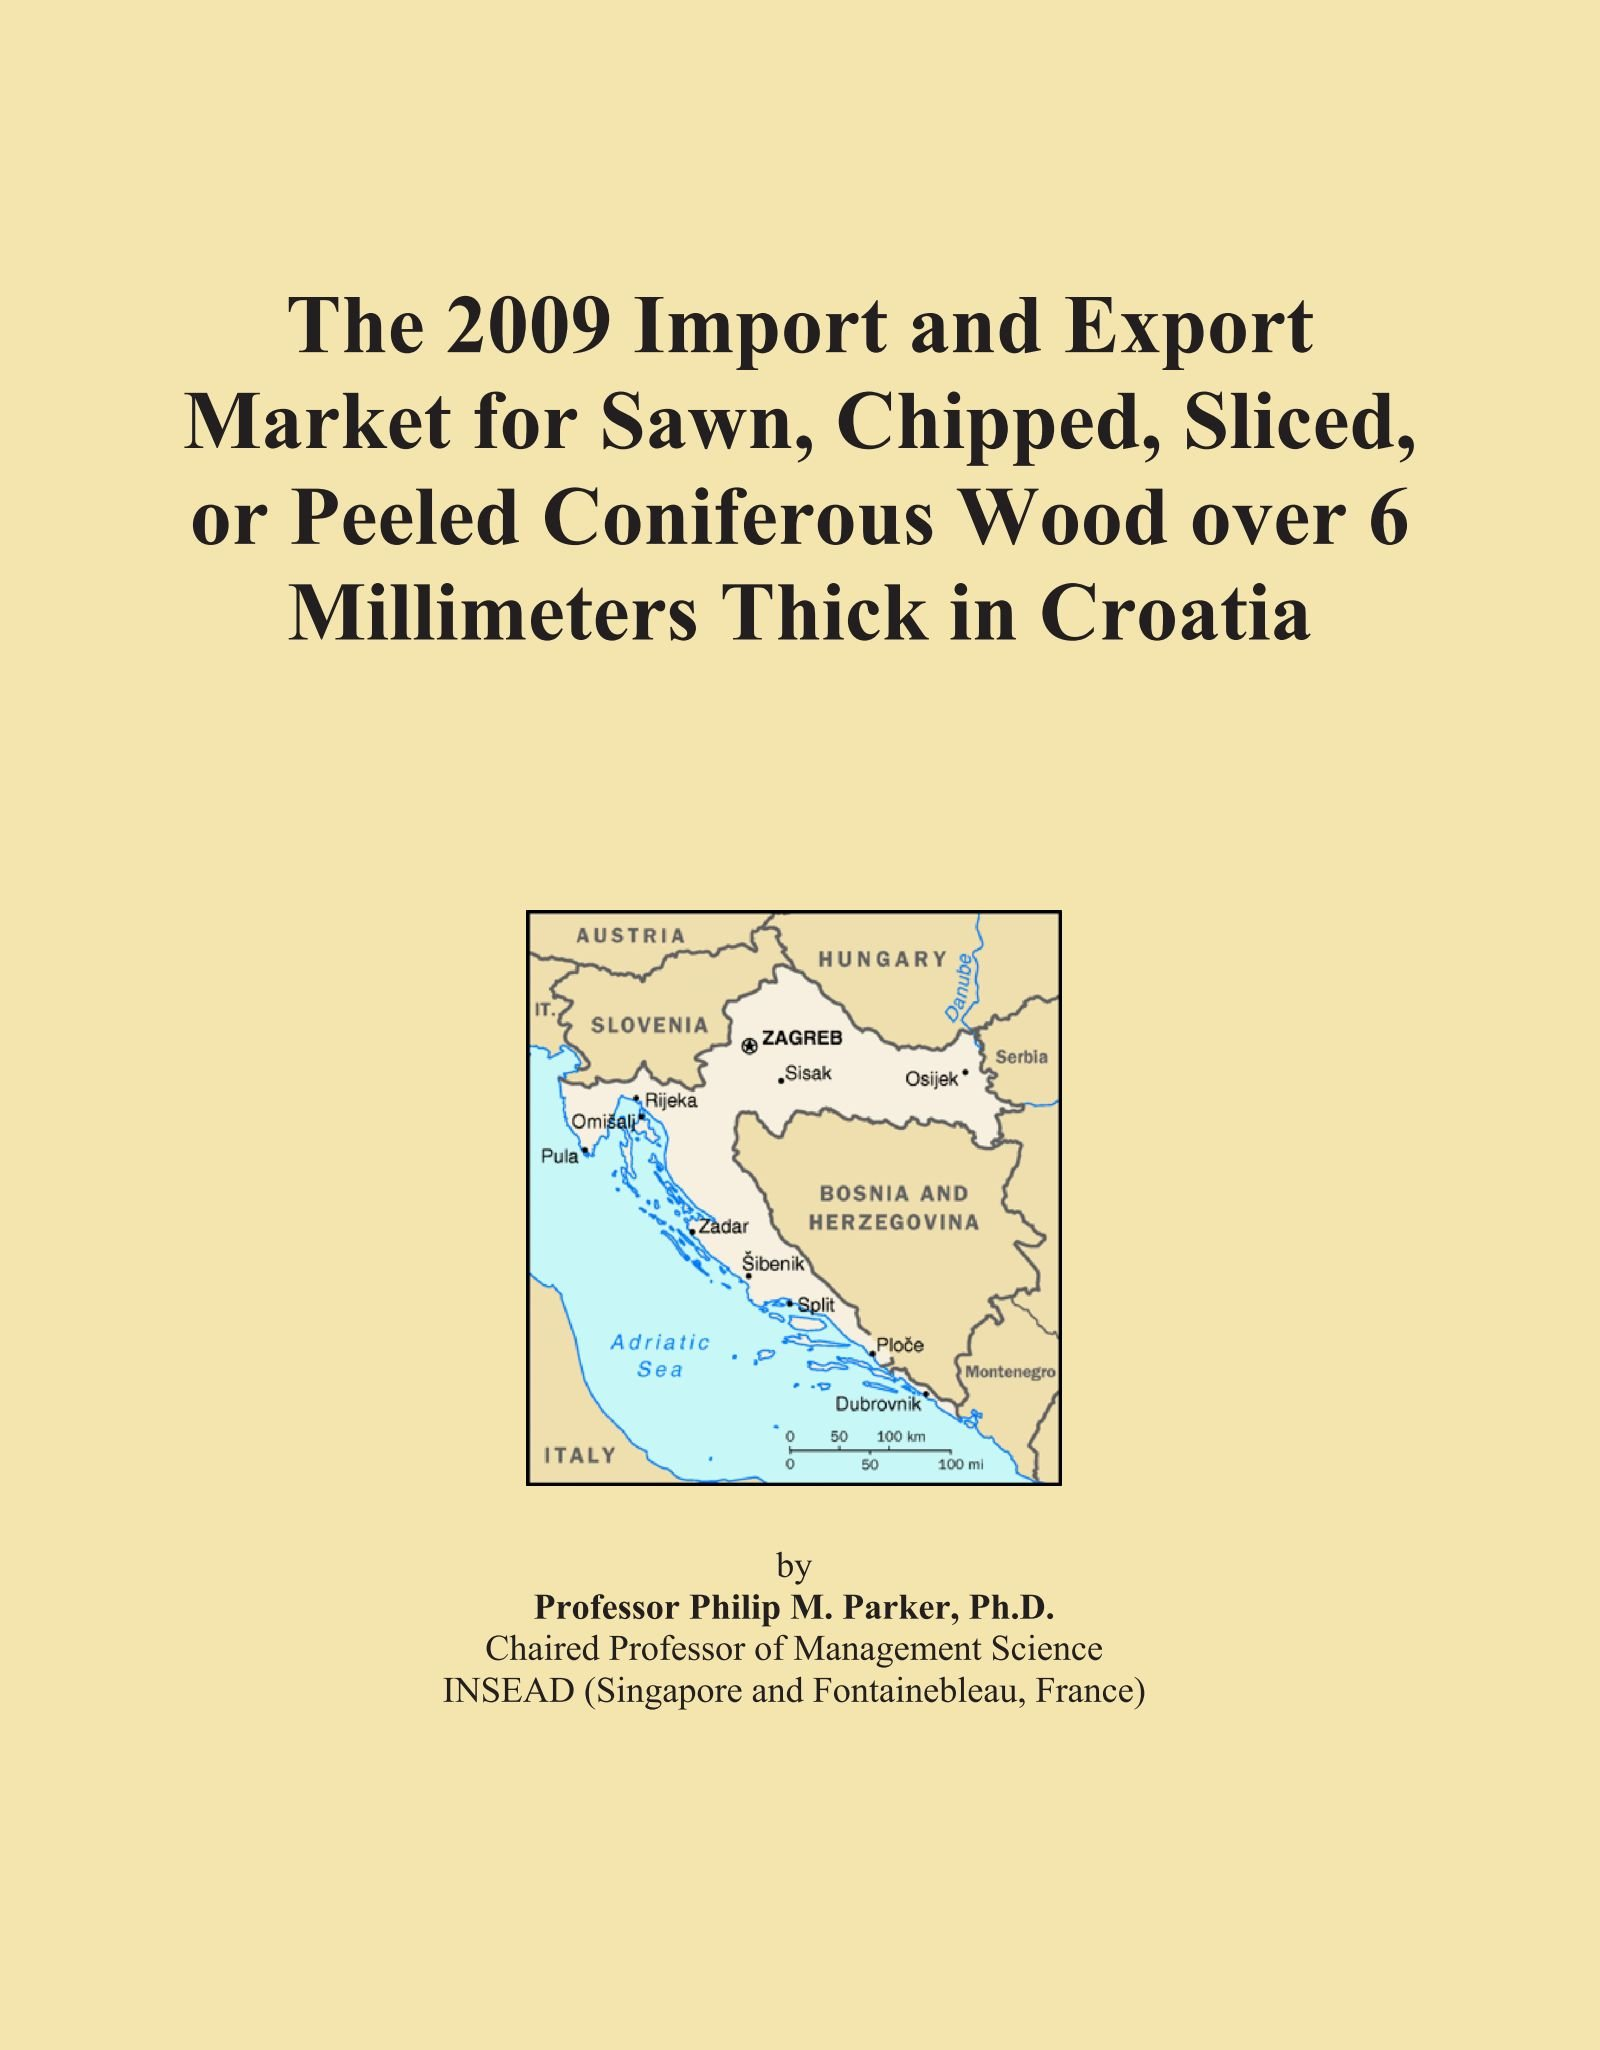 Download The 2009 Import and Export Market for Sawn, Chipped, Sliced, or Peeled Coniferous Wood over 6 Millimeters Thick in Croatia PDF